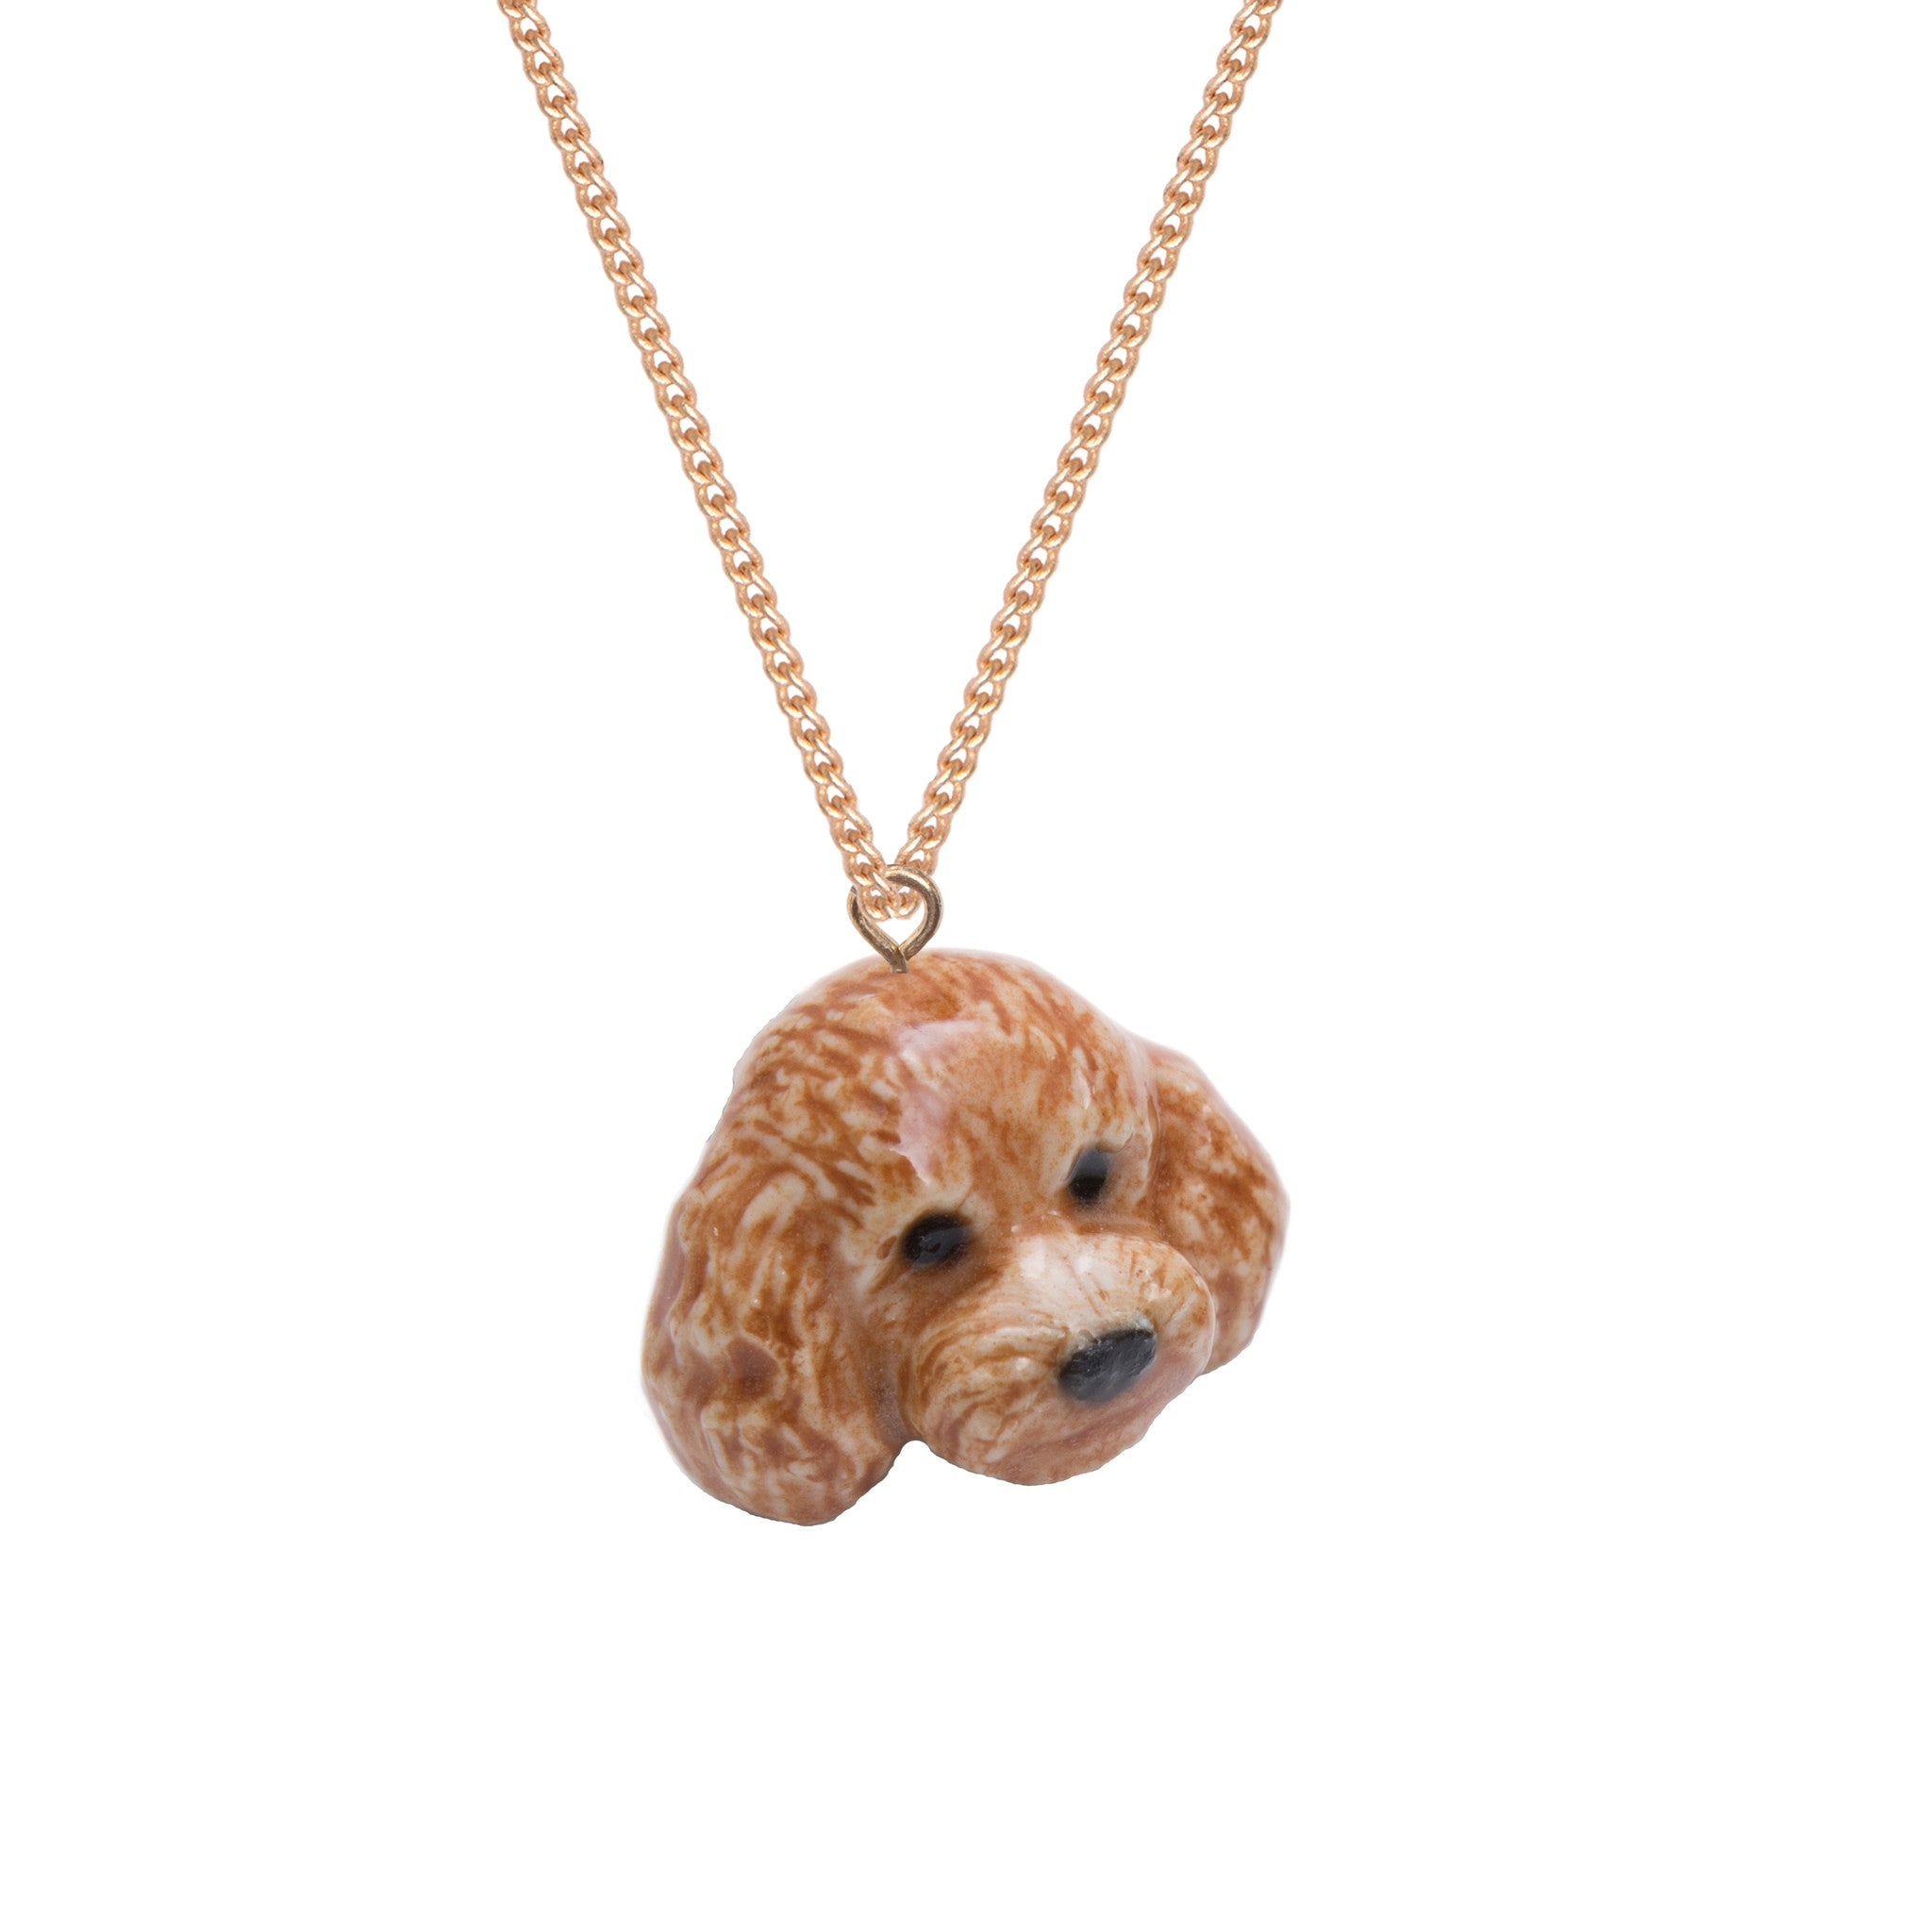 Apricot Poodle Head Necklace